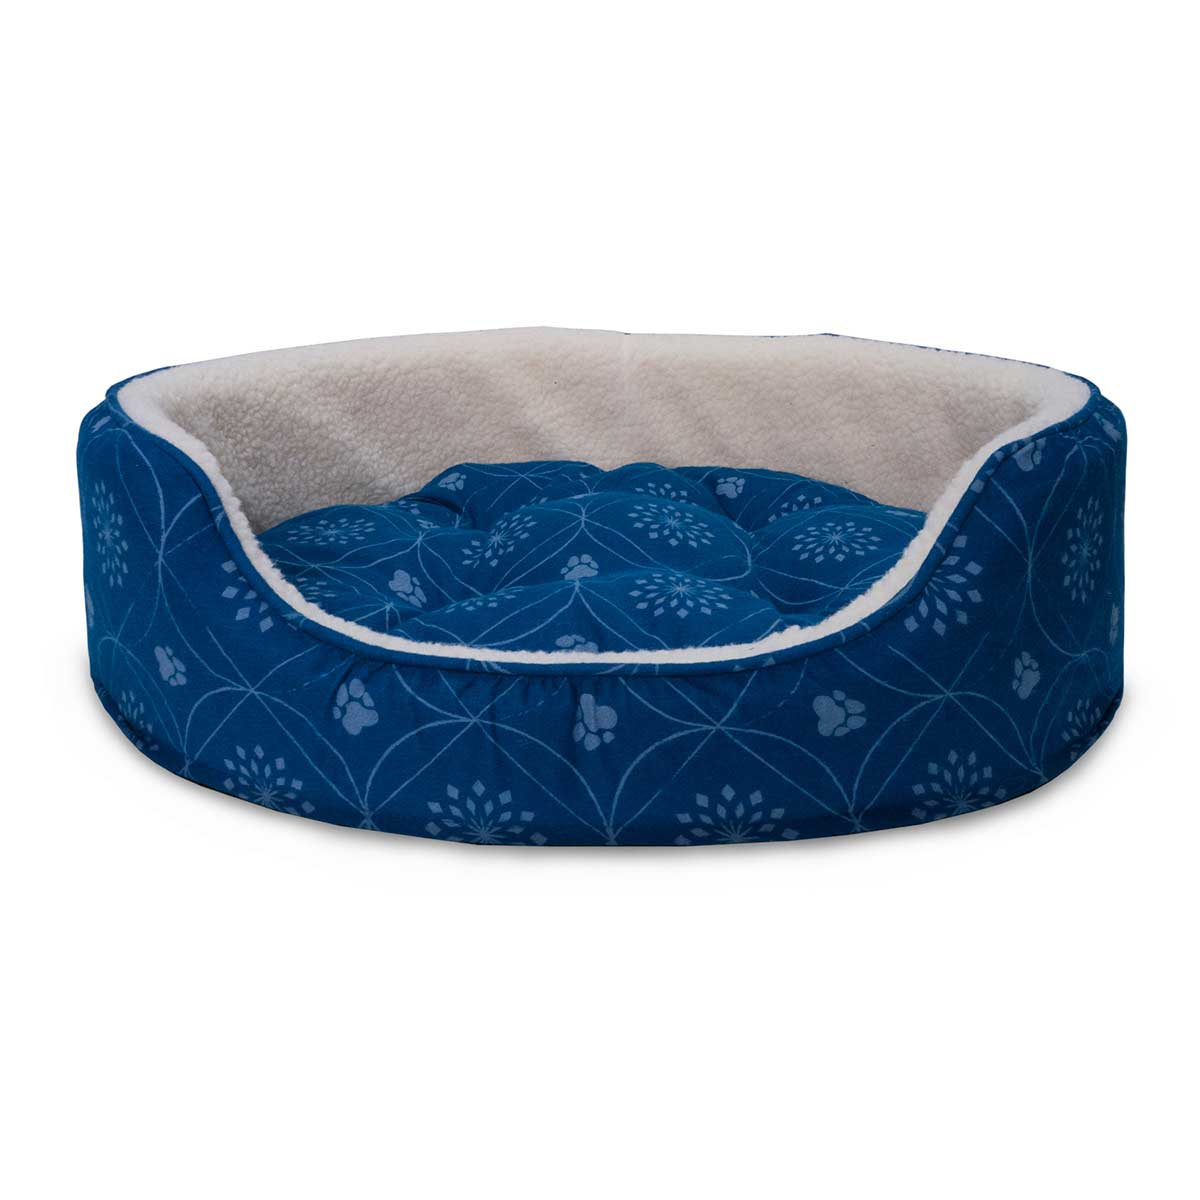 FurHaven Nap Paw Print Decor Flannel Oval Twilight Blue Ped Bed - 29 inches by 42 inches